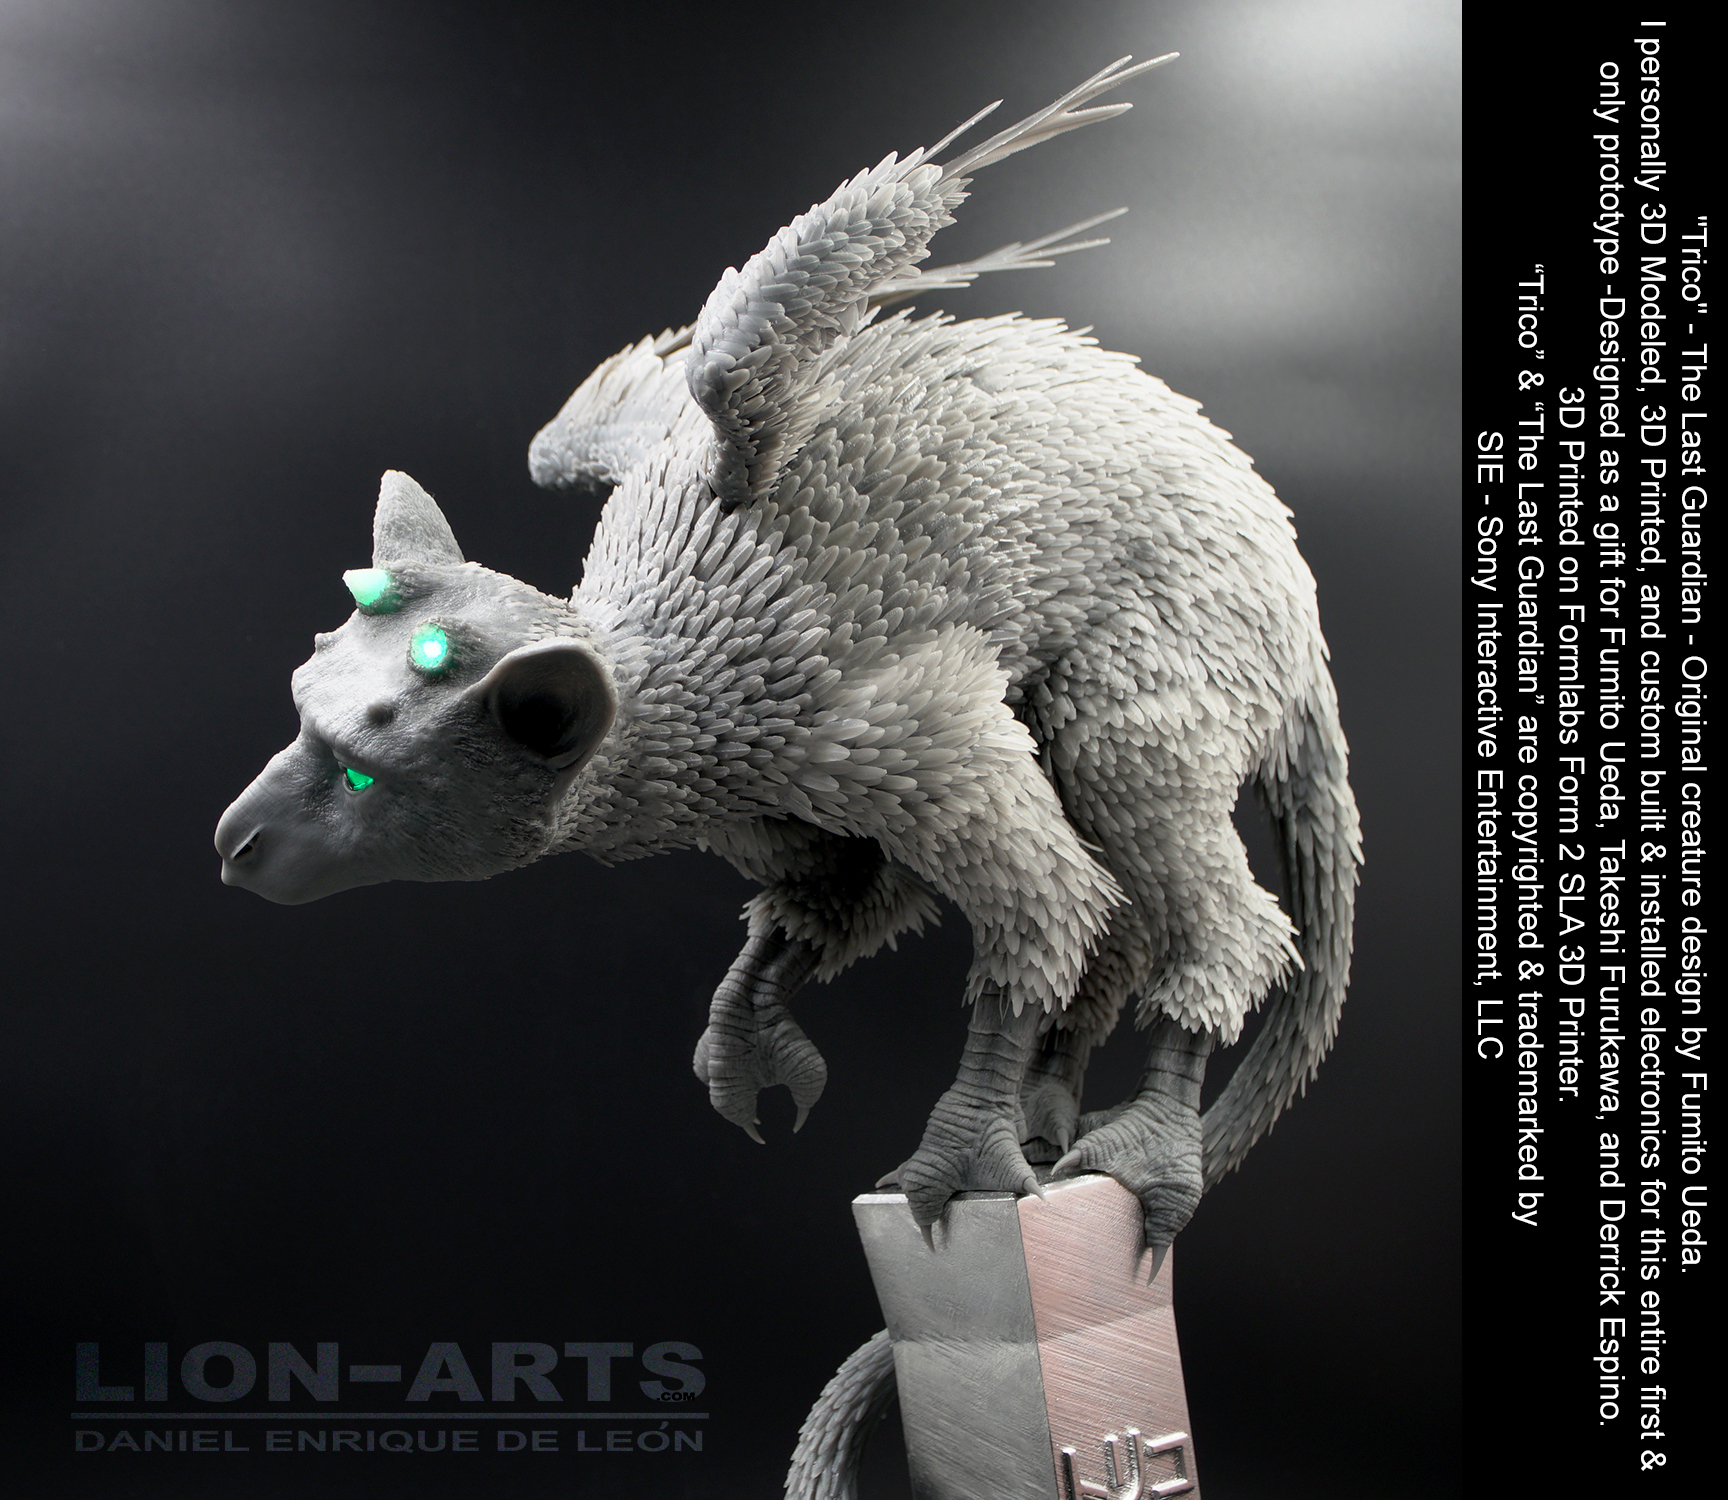 Trico-Bright-Side-LION-ARTS-Fixed1.jpg